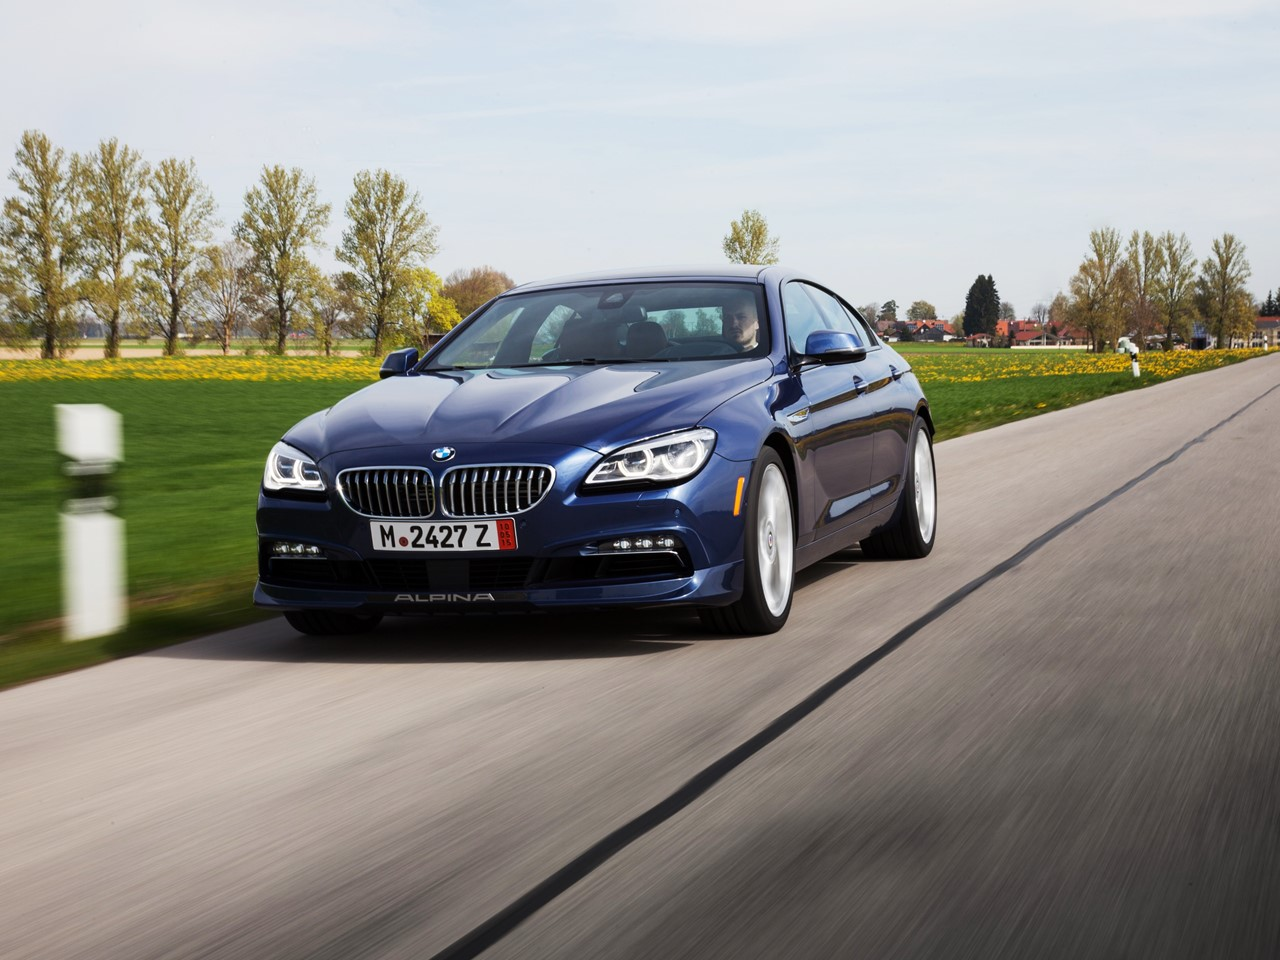 2016 Alpina B6 xDrive Gran Coupe 26